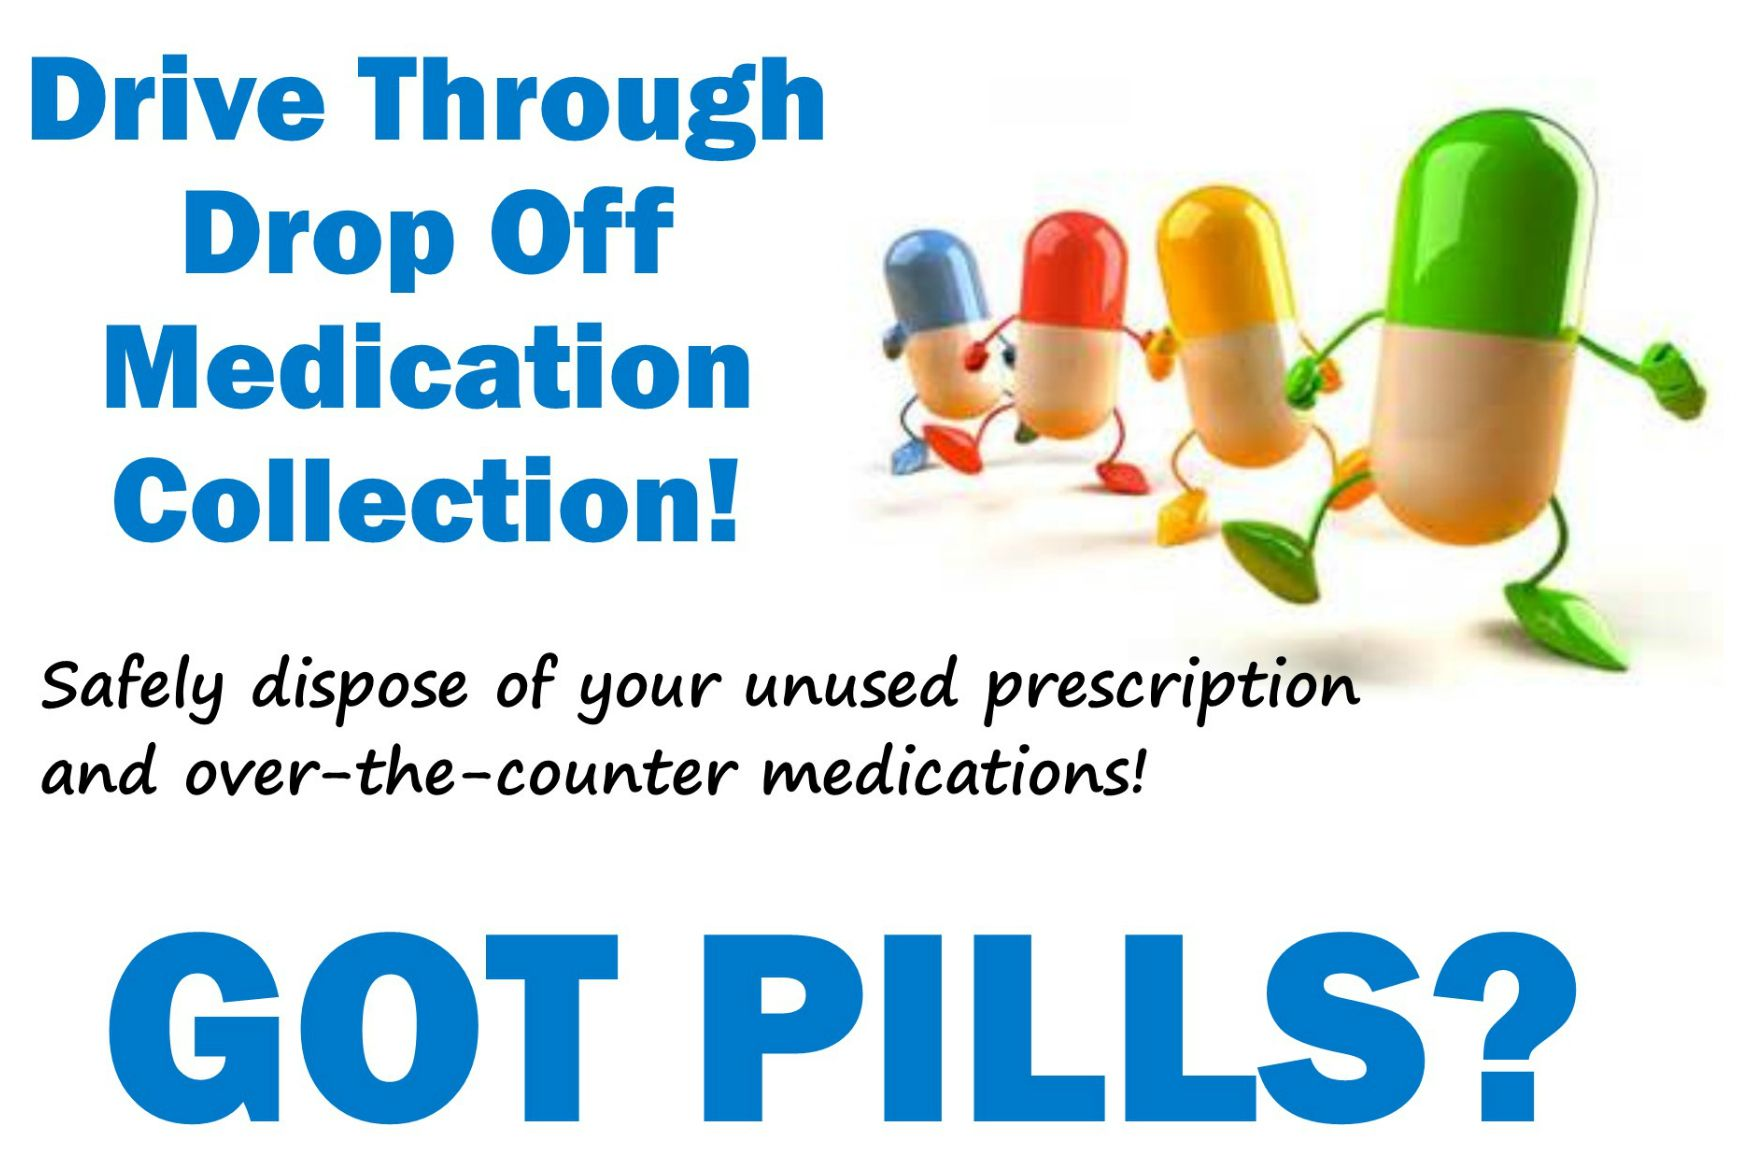 Next Medication Collection Event is Saturday, April 25!